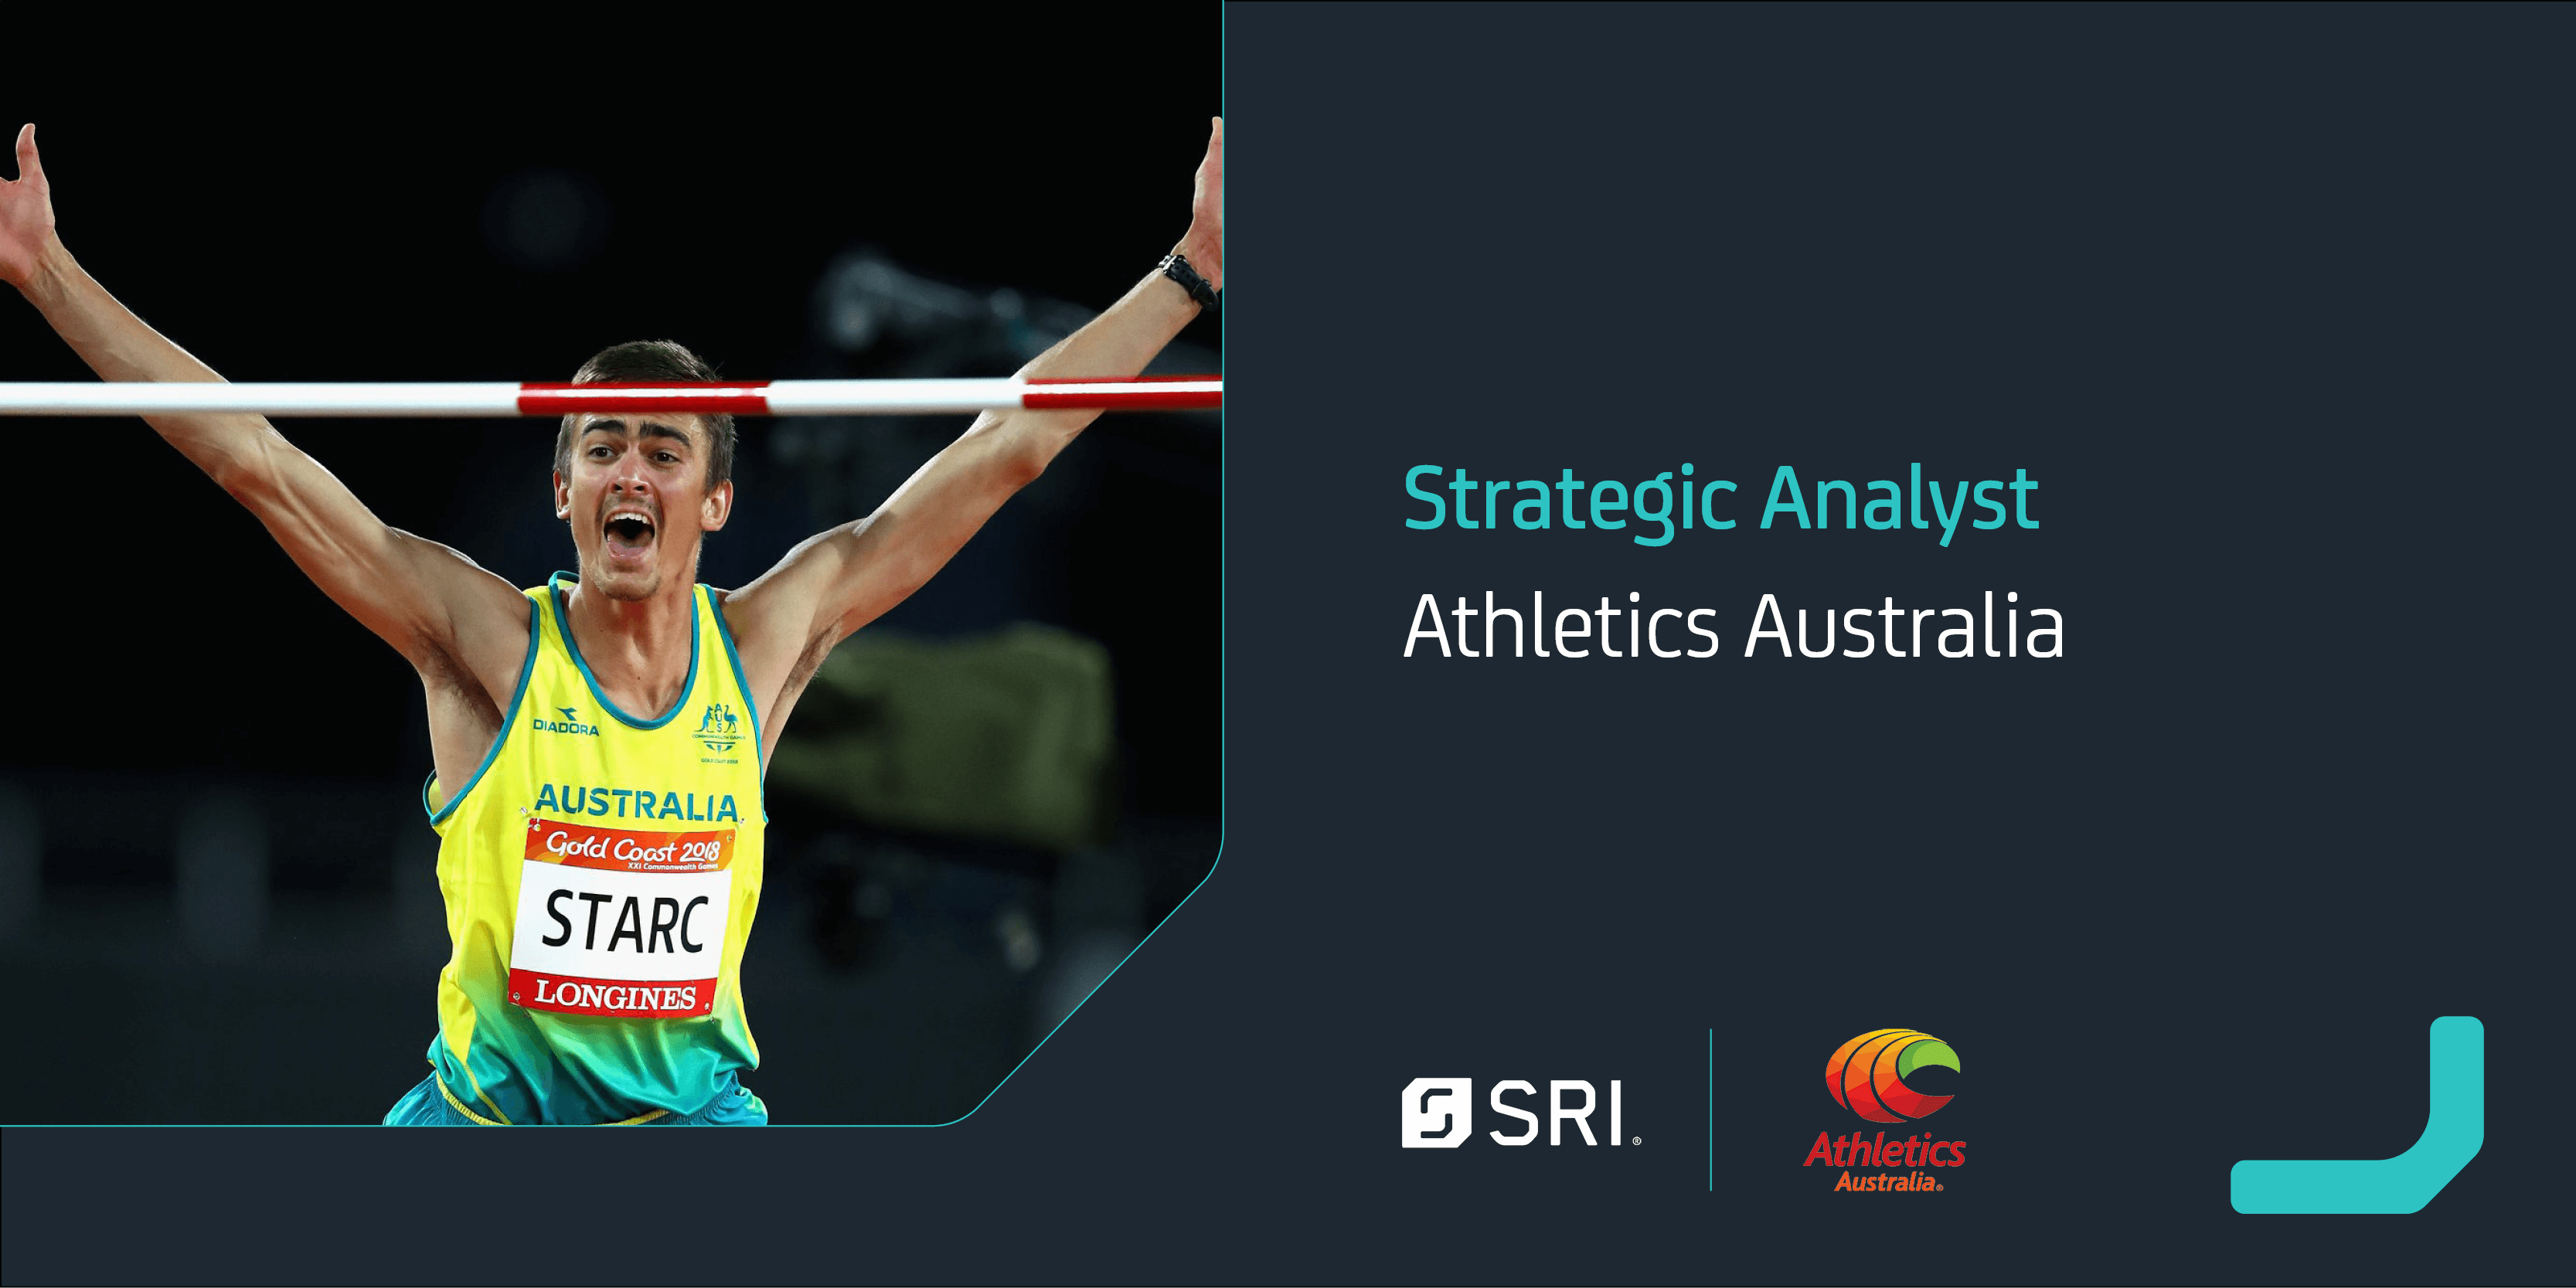 Athletics Australia seek a Strategic Analyst